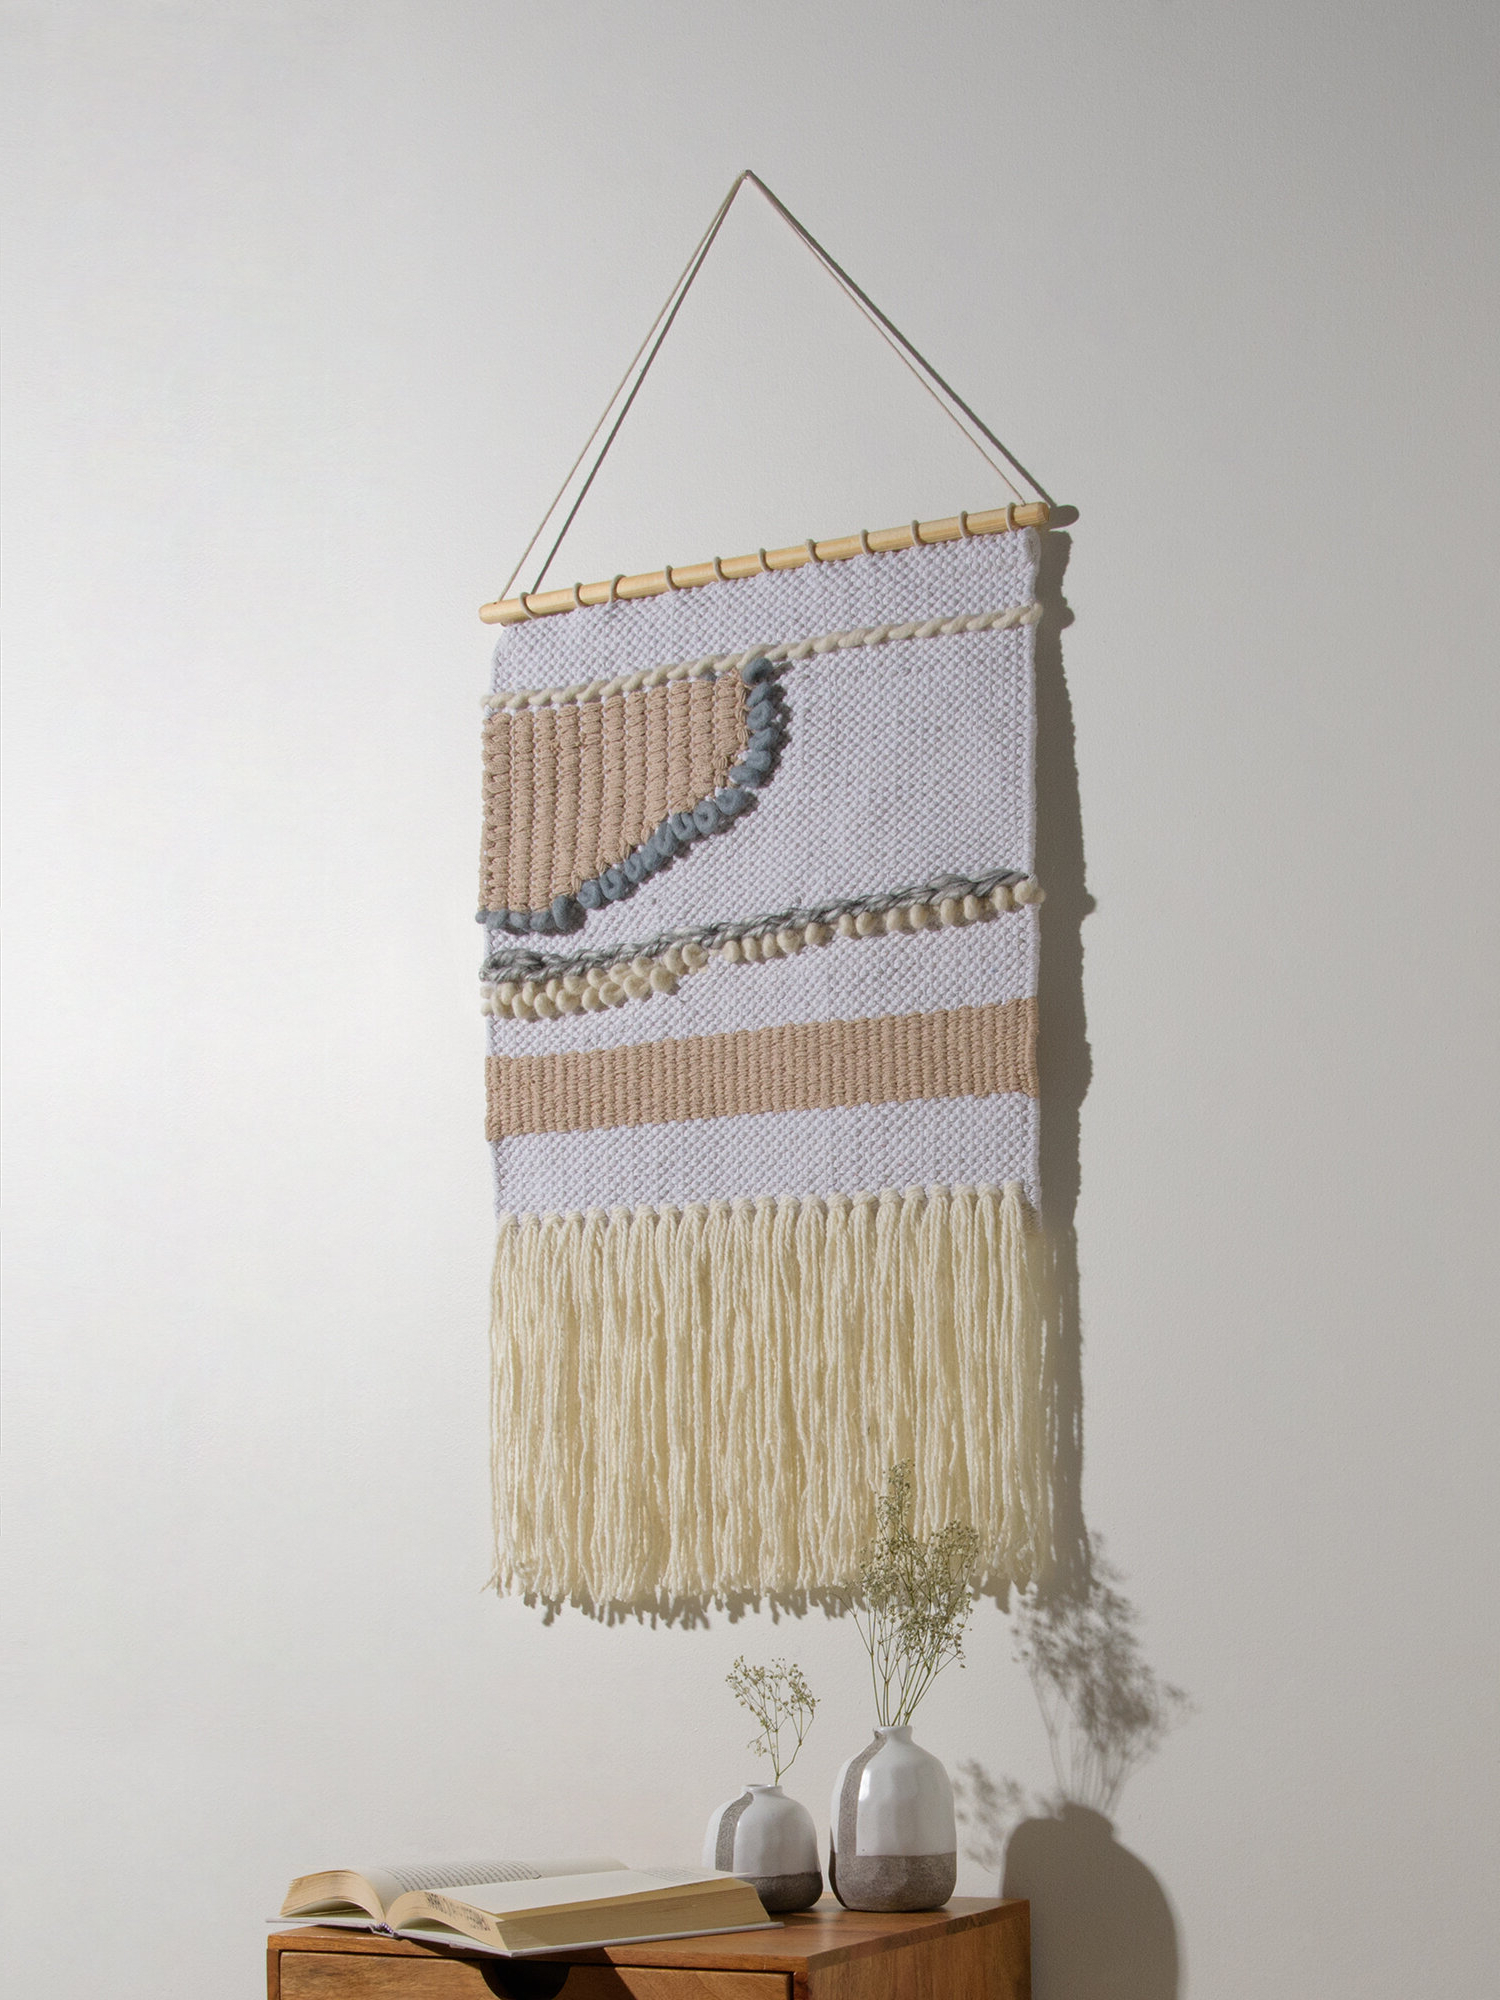 Blended Fabric Wall Hangings Regarding Most Current Blended Fabric Wall Hanging With Hanging Accessories Included (View 6 of 20)